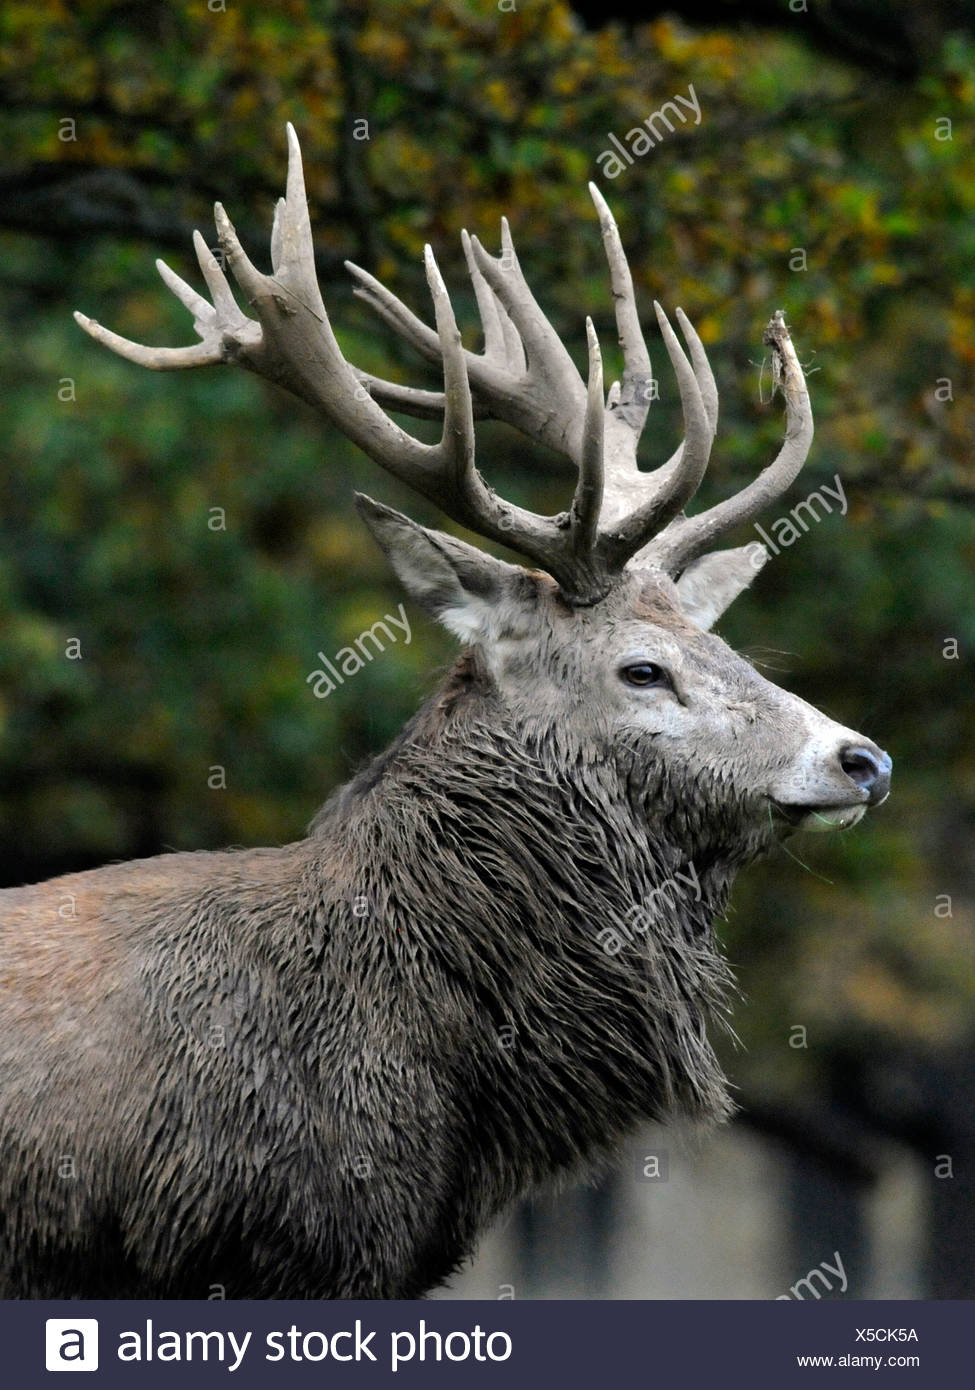 An adult Red Deer stag covered in mud, with antlers. - Stock Image